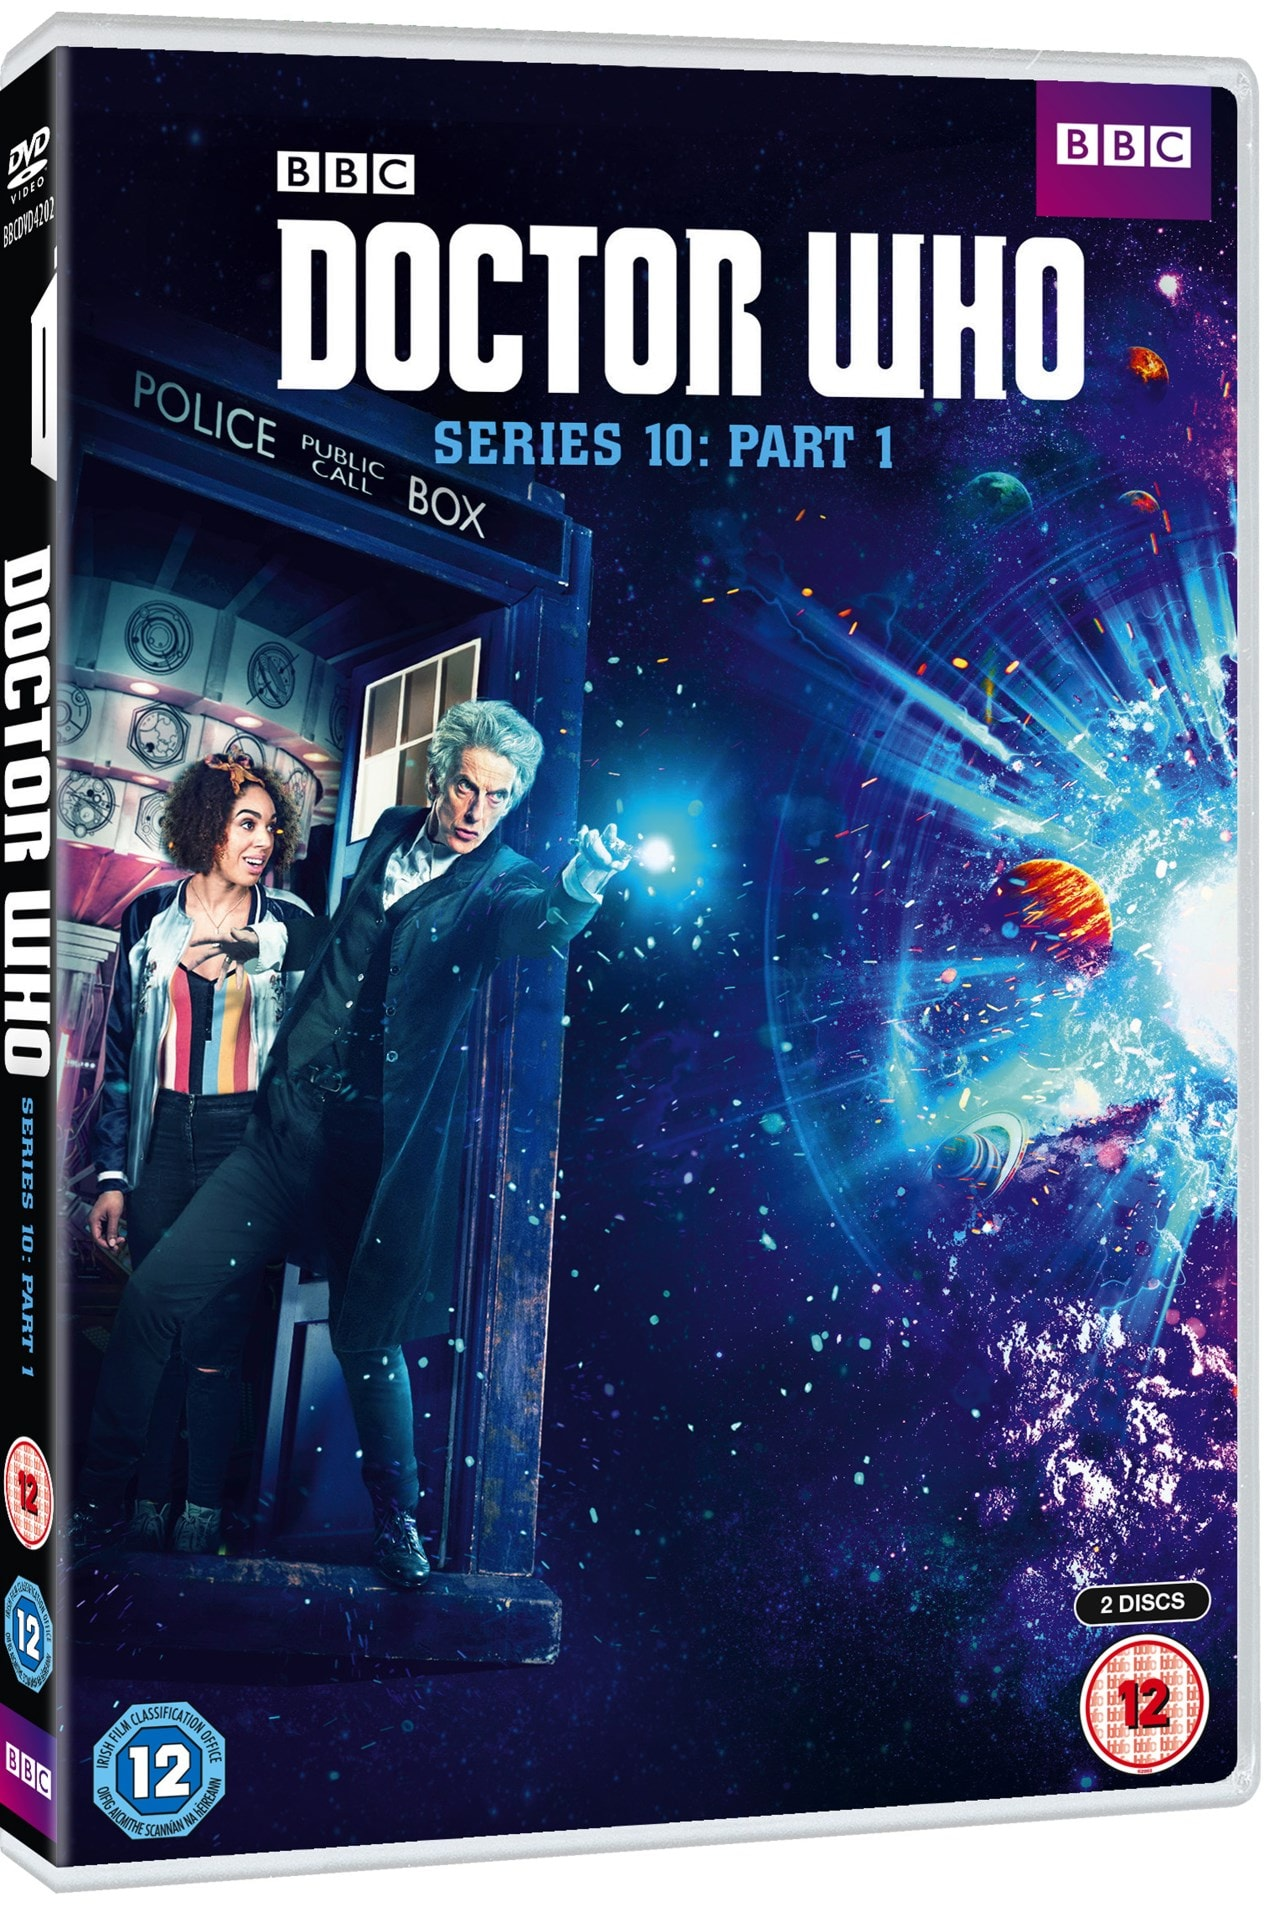 Doctor Who: Series 10 - Part 1 - 2